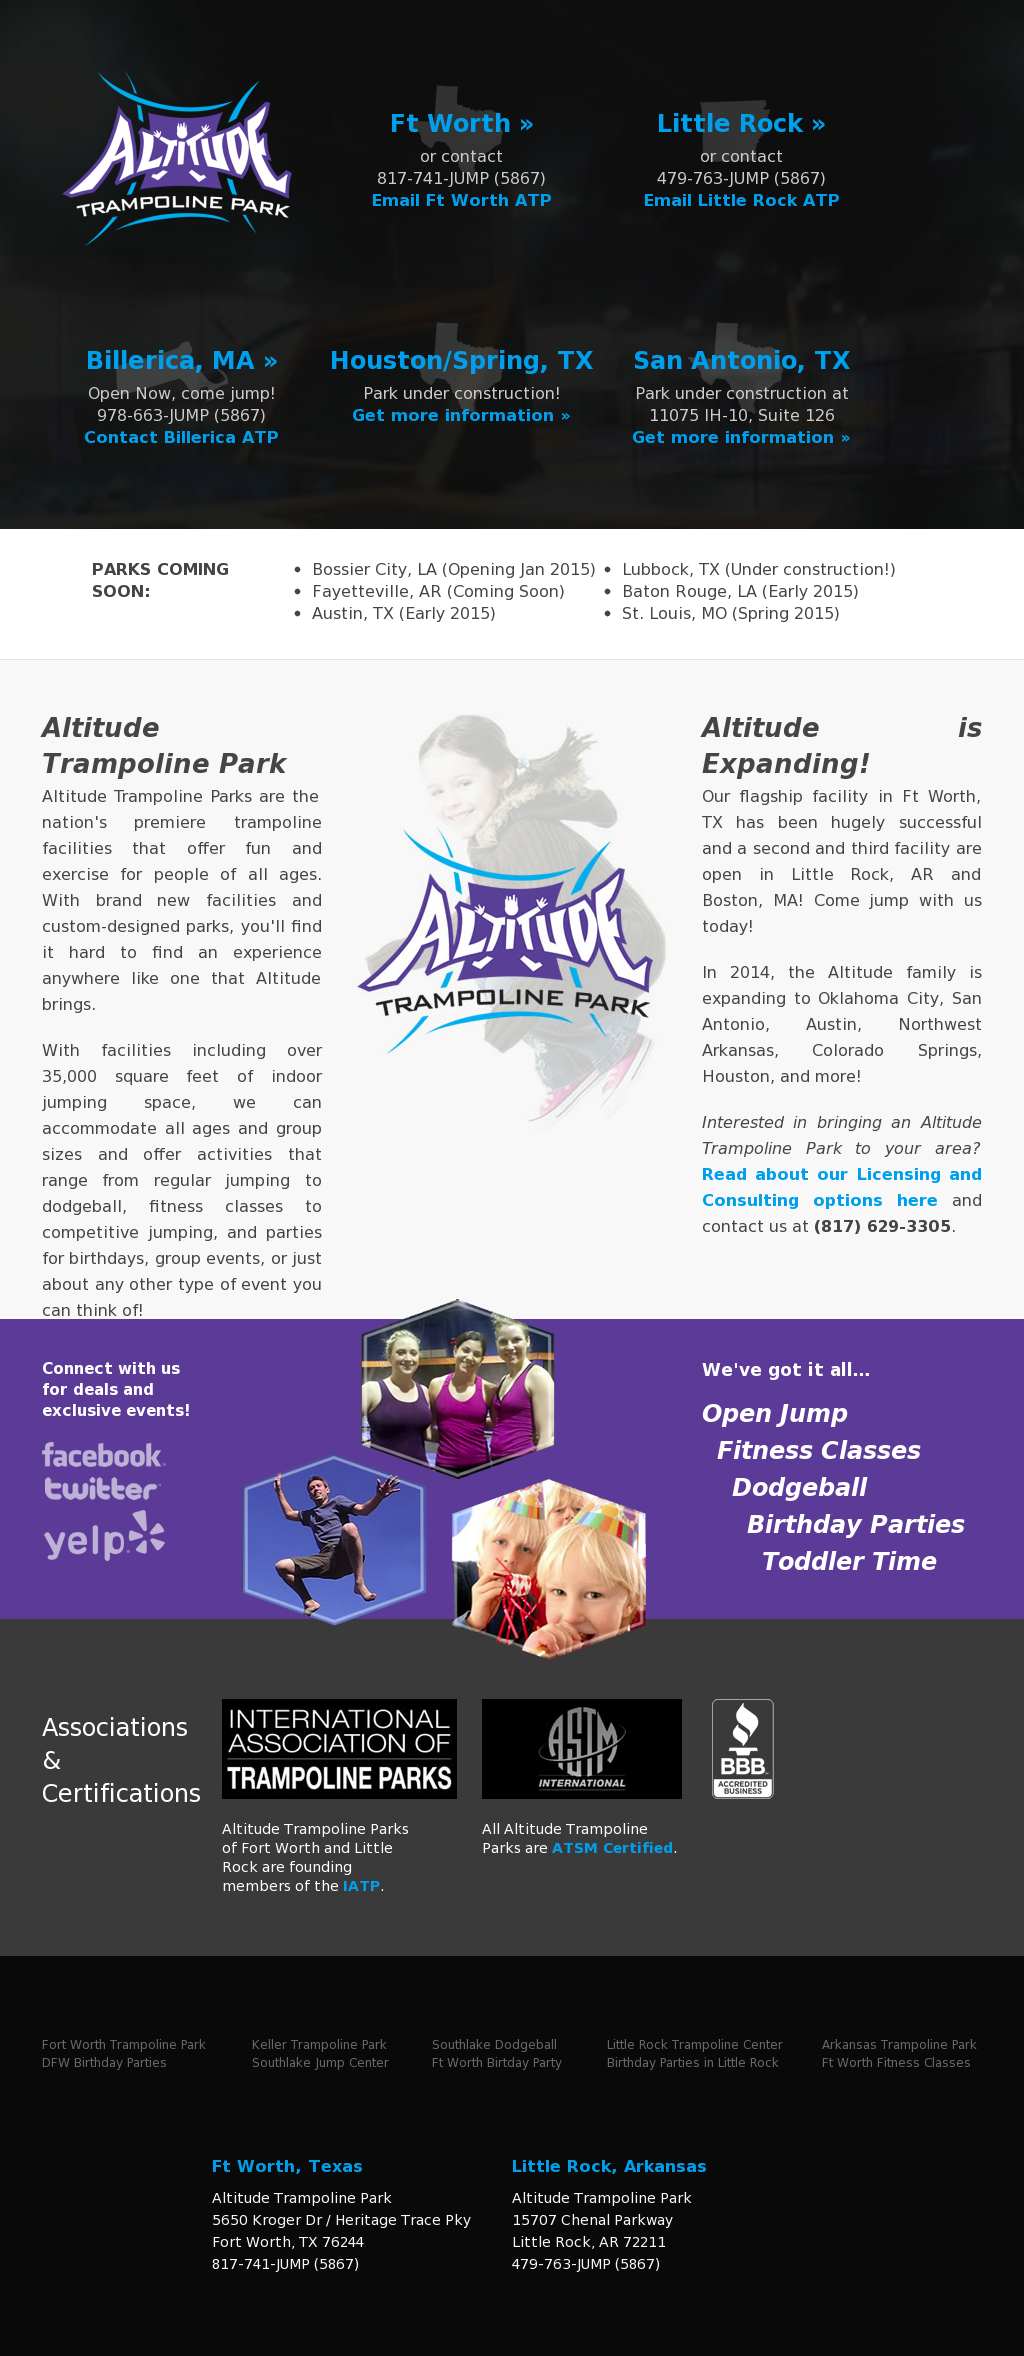 Altitude Trampoline Park Competitors, Revenue and Employees